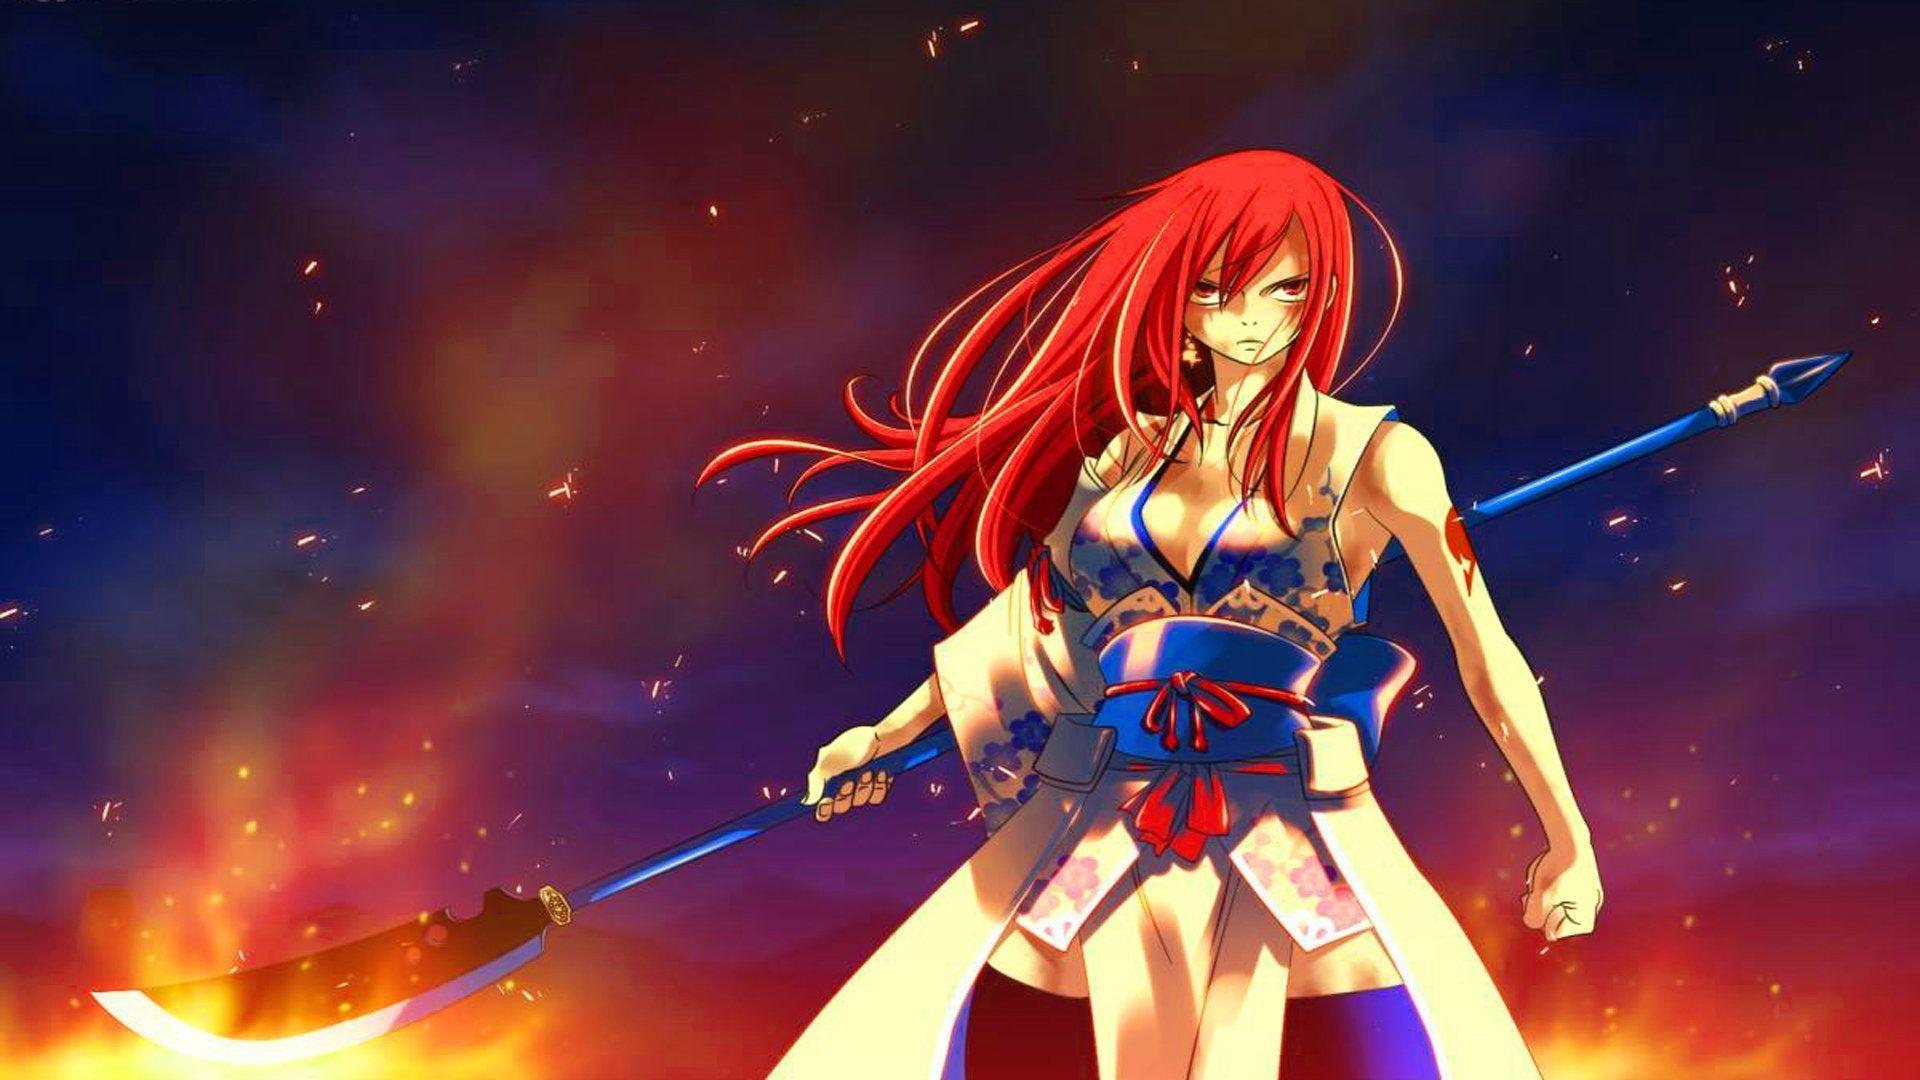 Fairy Tail Wallpapers Hd Erza Image & Pictures